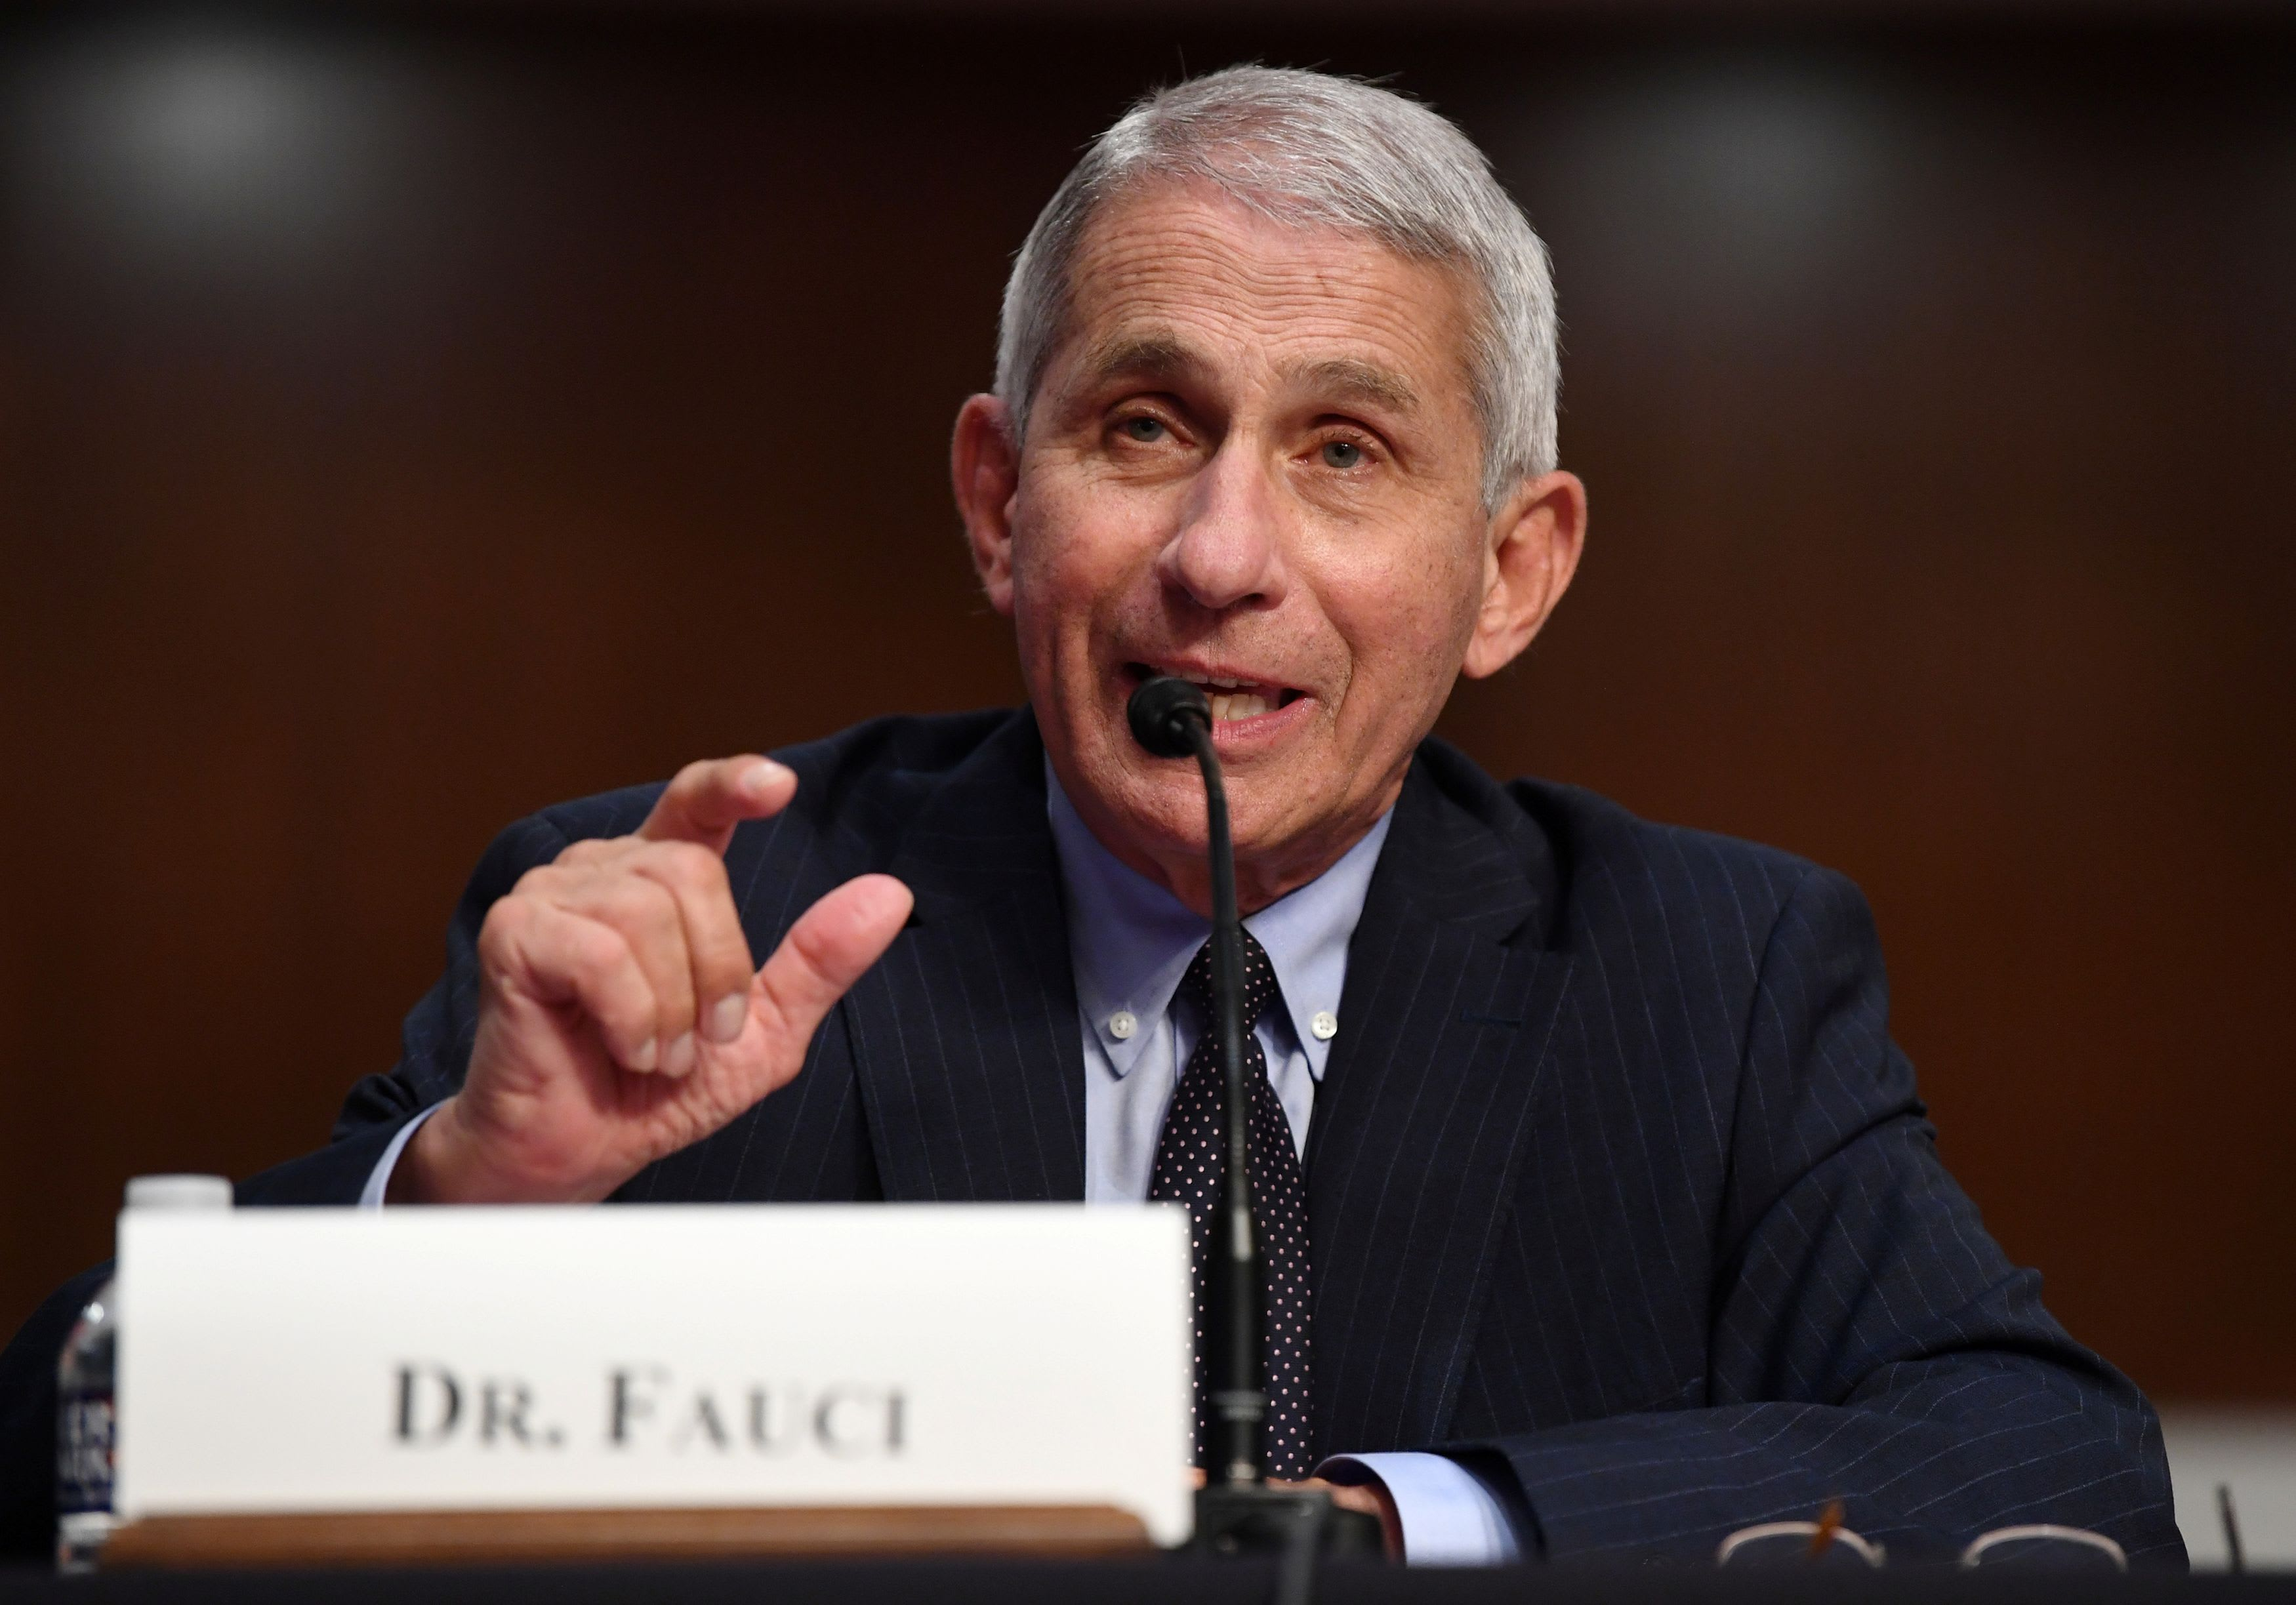 'The death toll would be enormous,' Fauci says of herd immunity to coronavirus in the U.S.